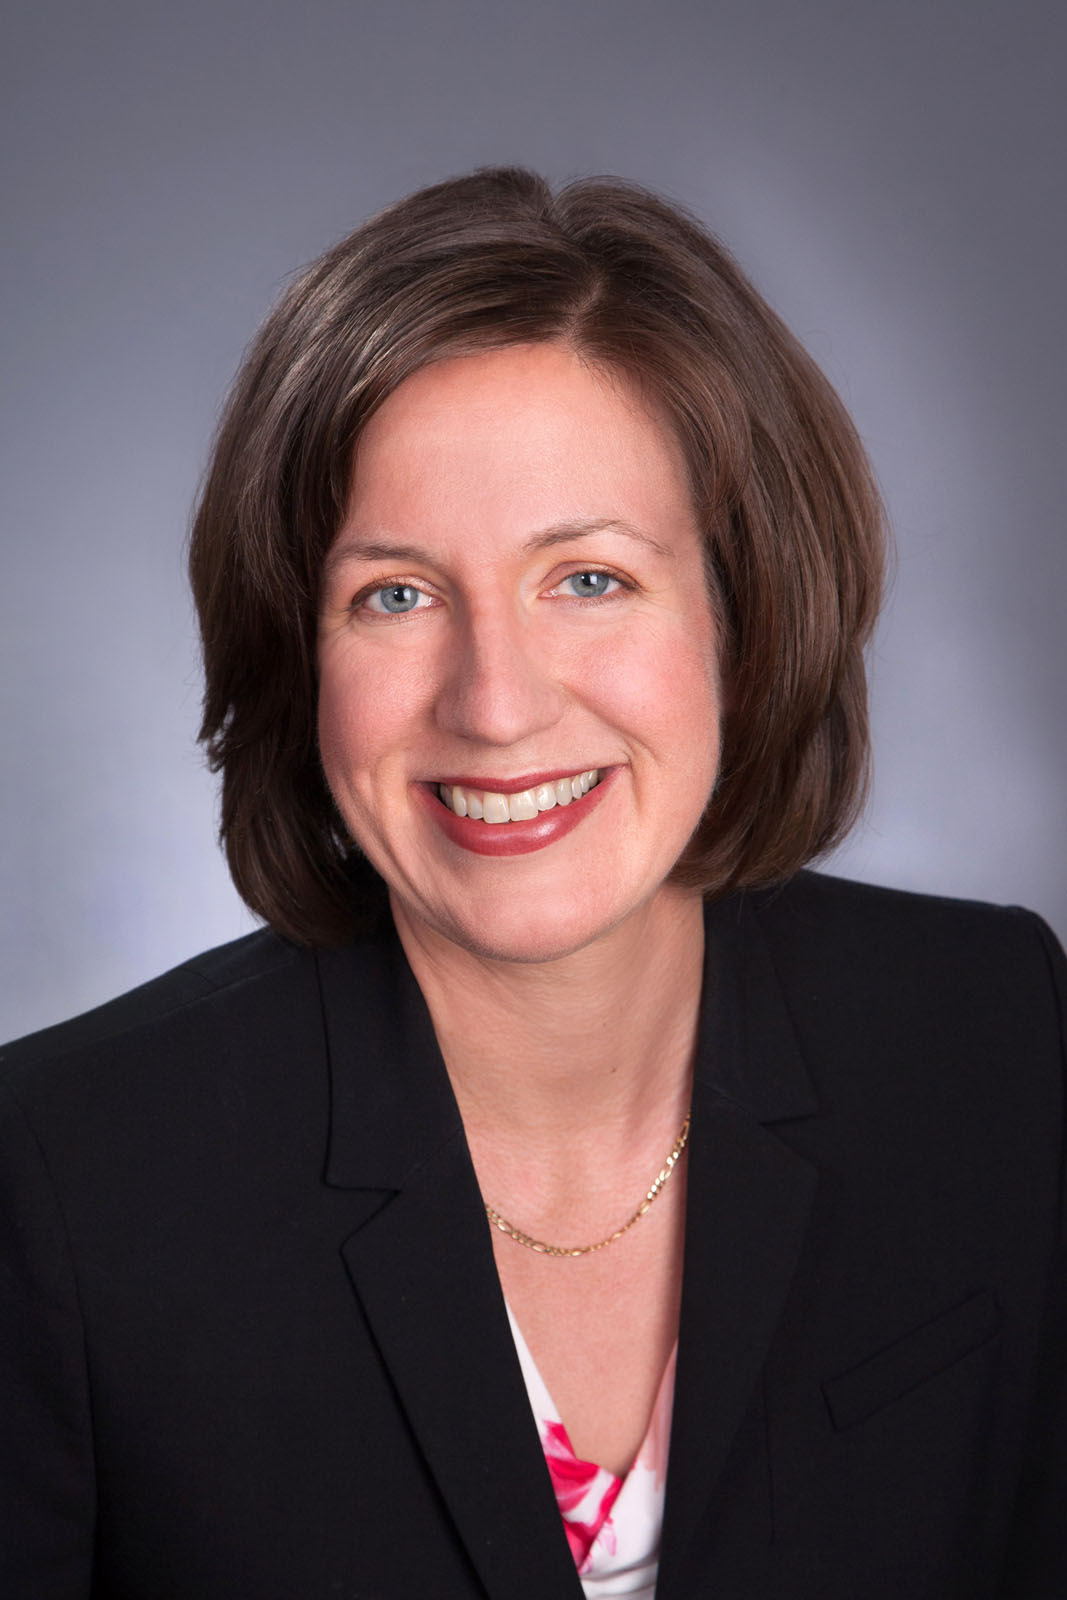 Carrie Hanson Veurink - Dear ACDN Colleagues,My resignation from the Alliance of Career Development Nonprofits (ACDN) will be effective Friday, January 18, 2019.This was not an easy decision to make because the last six years have been very rewarding. Thank you for the opportunities you and the ACDN Board of Directors provided me as Managing Partner. I've enjoyed working with the ACDN Board of Directors, supporting the ACDN members with tools and resources for growth, collaborating with all the committees, building a new website, developing the National Smart & Sexy Day event, managing the annual National Conference, and working to build membership, and engage members in ACDN goings-on.It has been an absolute honor to work on behalf of ACDN in support of its nonprofit members across the nation. While it is difficult to fully express my sincere gratitude, I hope you understand how I appreciate the time we have spent together working to improve and expand the organization's impact and reach. Cumulatively, I have been affiliated with the Alliance for over 12 years - four years as an employee of Career Wardrobe; two years as an ACDN Board member, and over six years as Managing Partner. The mission of ACDN is critical and close to my heart and I will miss you all.I have accepted a position of Development and Outreach Manager at Contra Costa Interfaith Housing (CCIH) in Pleasant Hill, CA. This opportunity will give me a chance to grow professionally and work within and for my local community. I wish you, the Board, and ACDN all the best.I will be available until 1/18 in my role as Managing Partner and look forward to connecting with you before my departure.Respectfully yours,Carrie